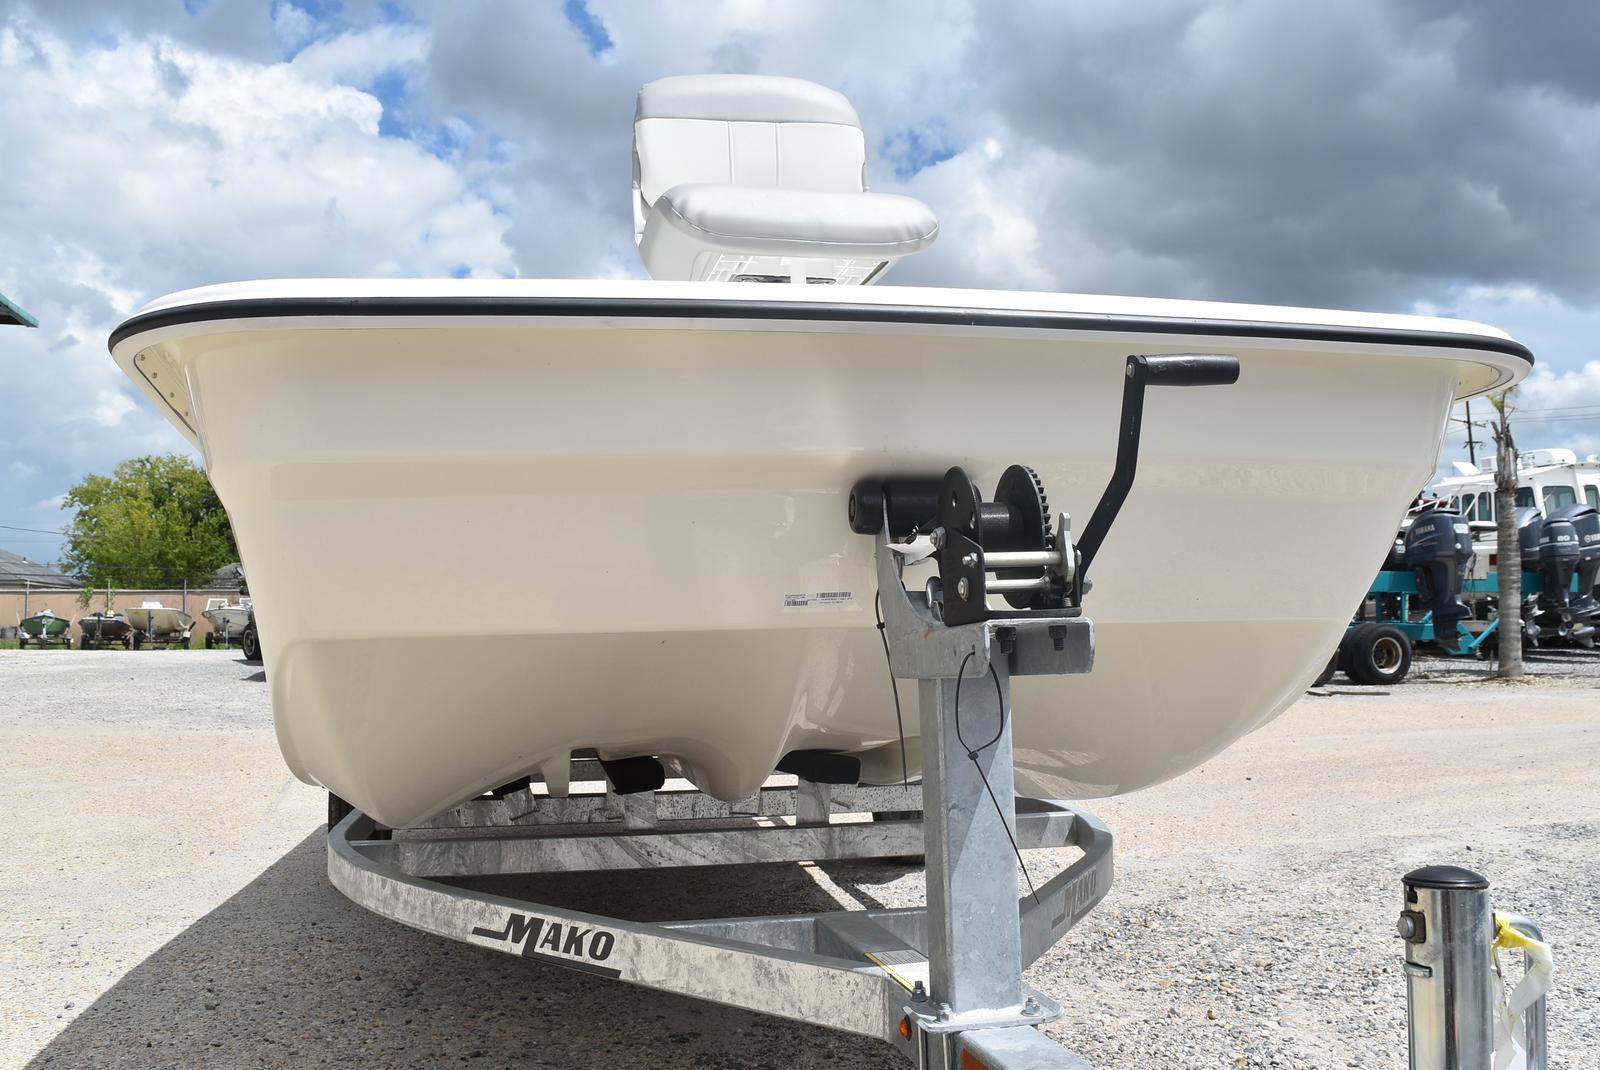 2020 Mako boat for sale, model of the boat is Pro Skiff 17, 75 ELPT & Image # 362 of 702